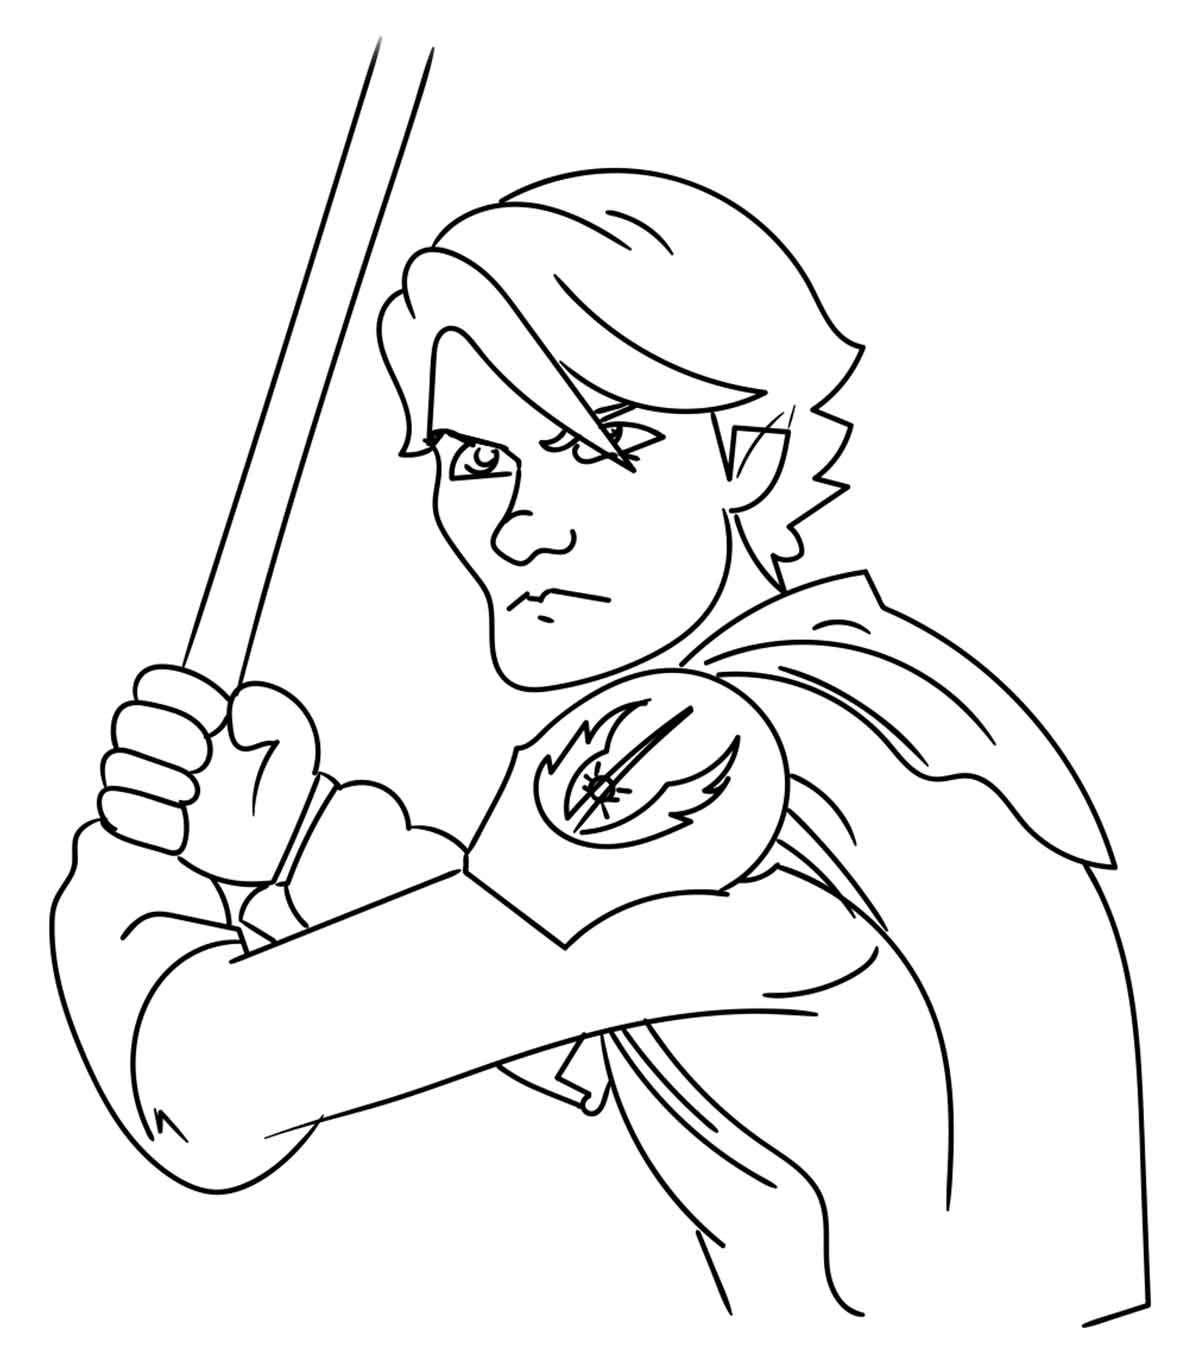 Star Wars Clone Wars Coloring Pages Best Coloring Pages